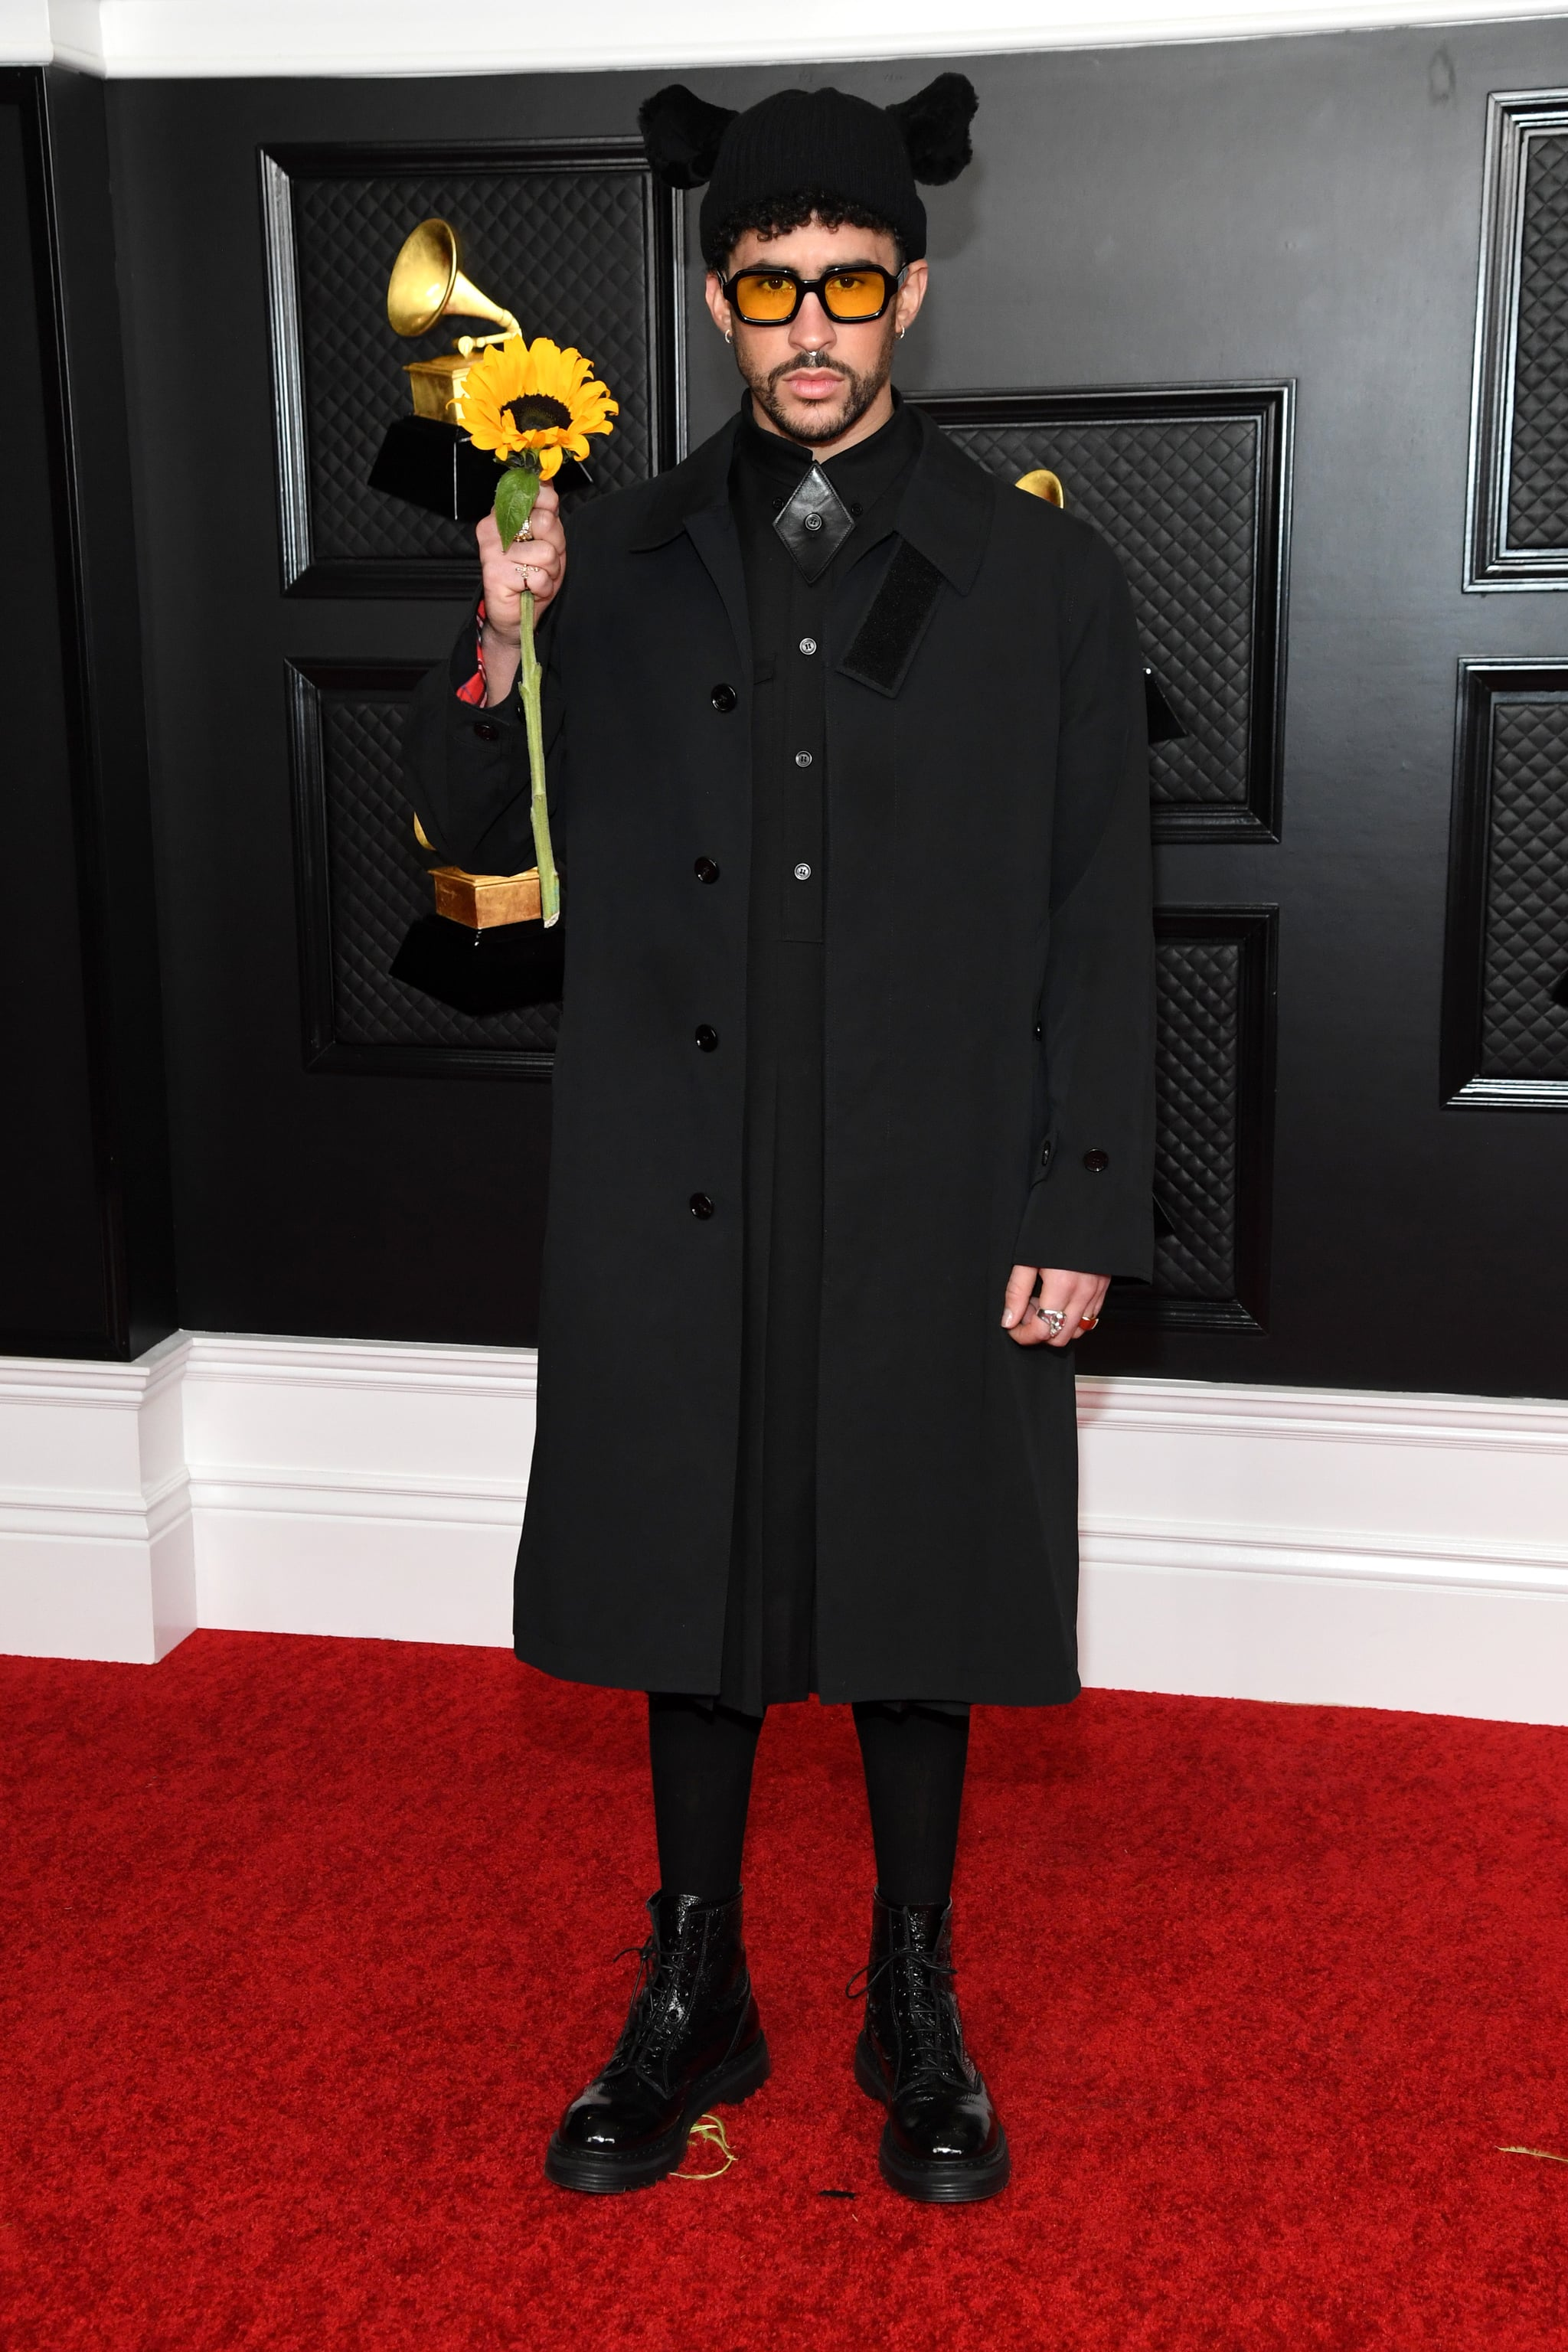 Bad Bunny at the 2021 Grammy Awards | A Stylish, Star-Packed Grammys Red Carpet Is Music to Our Ears | POPSUGAR Fashion Photo 11